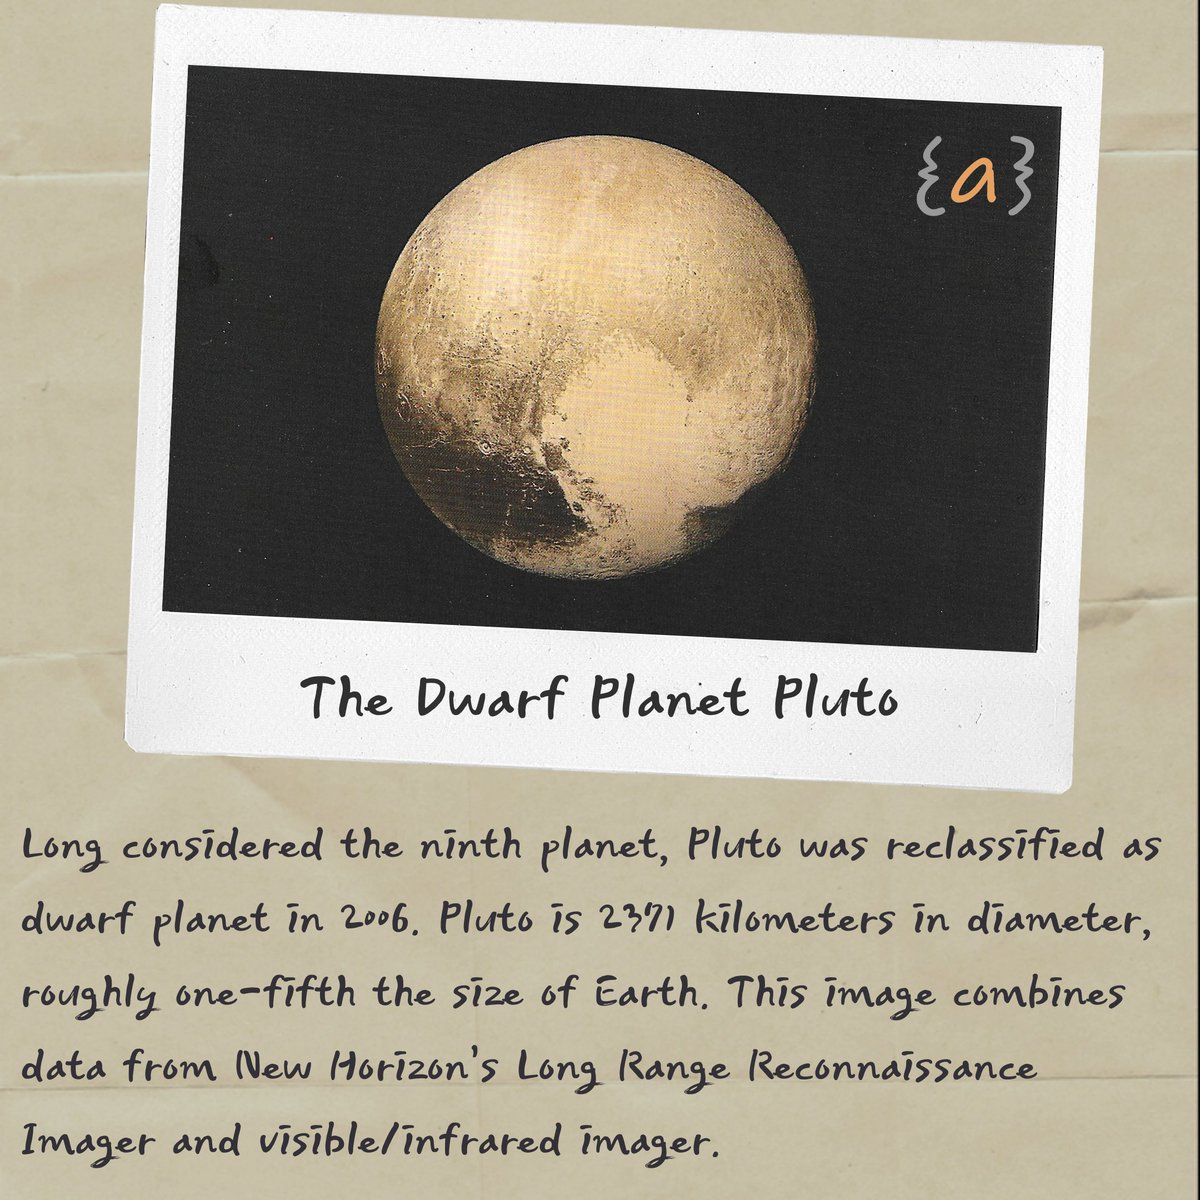 The Dwarf Planet Pluto #dwarf #planet #newhorizon #smallest #spacephotos #journalofankit https://t.co/pKeSMLaLvZ